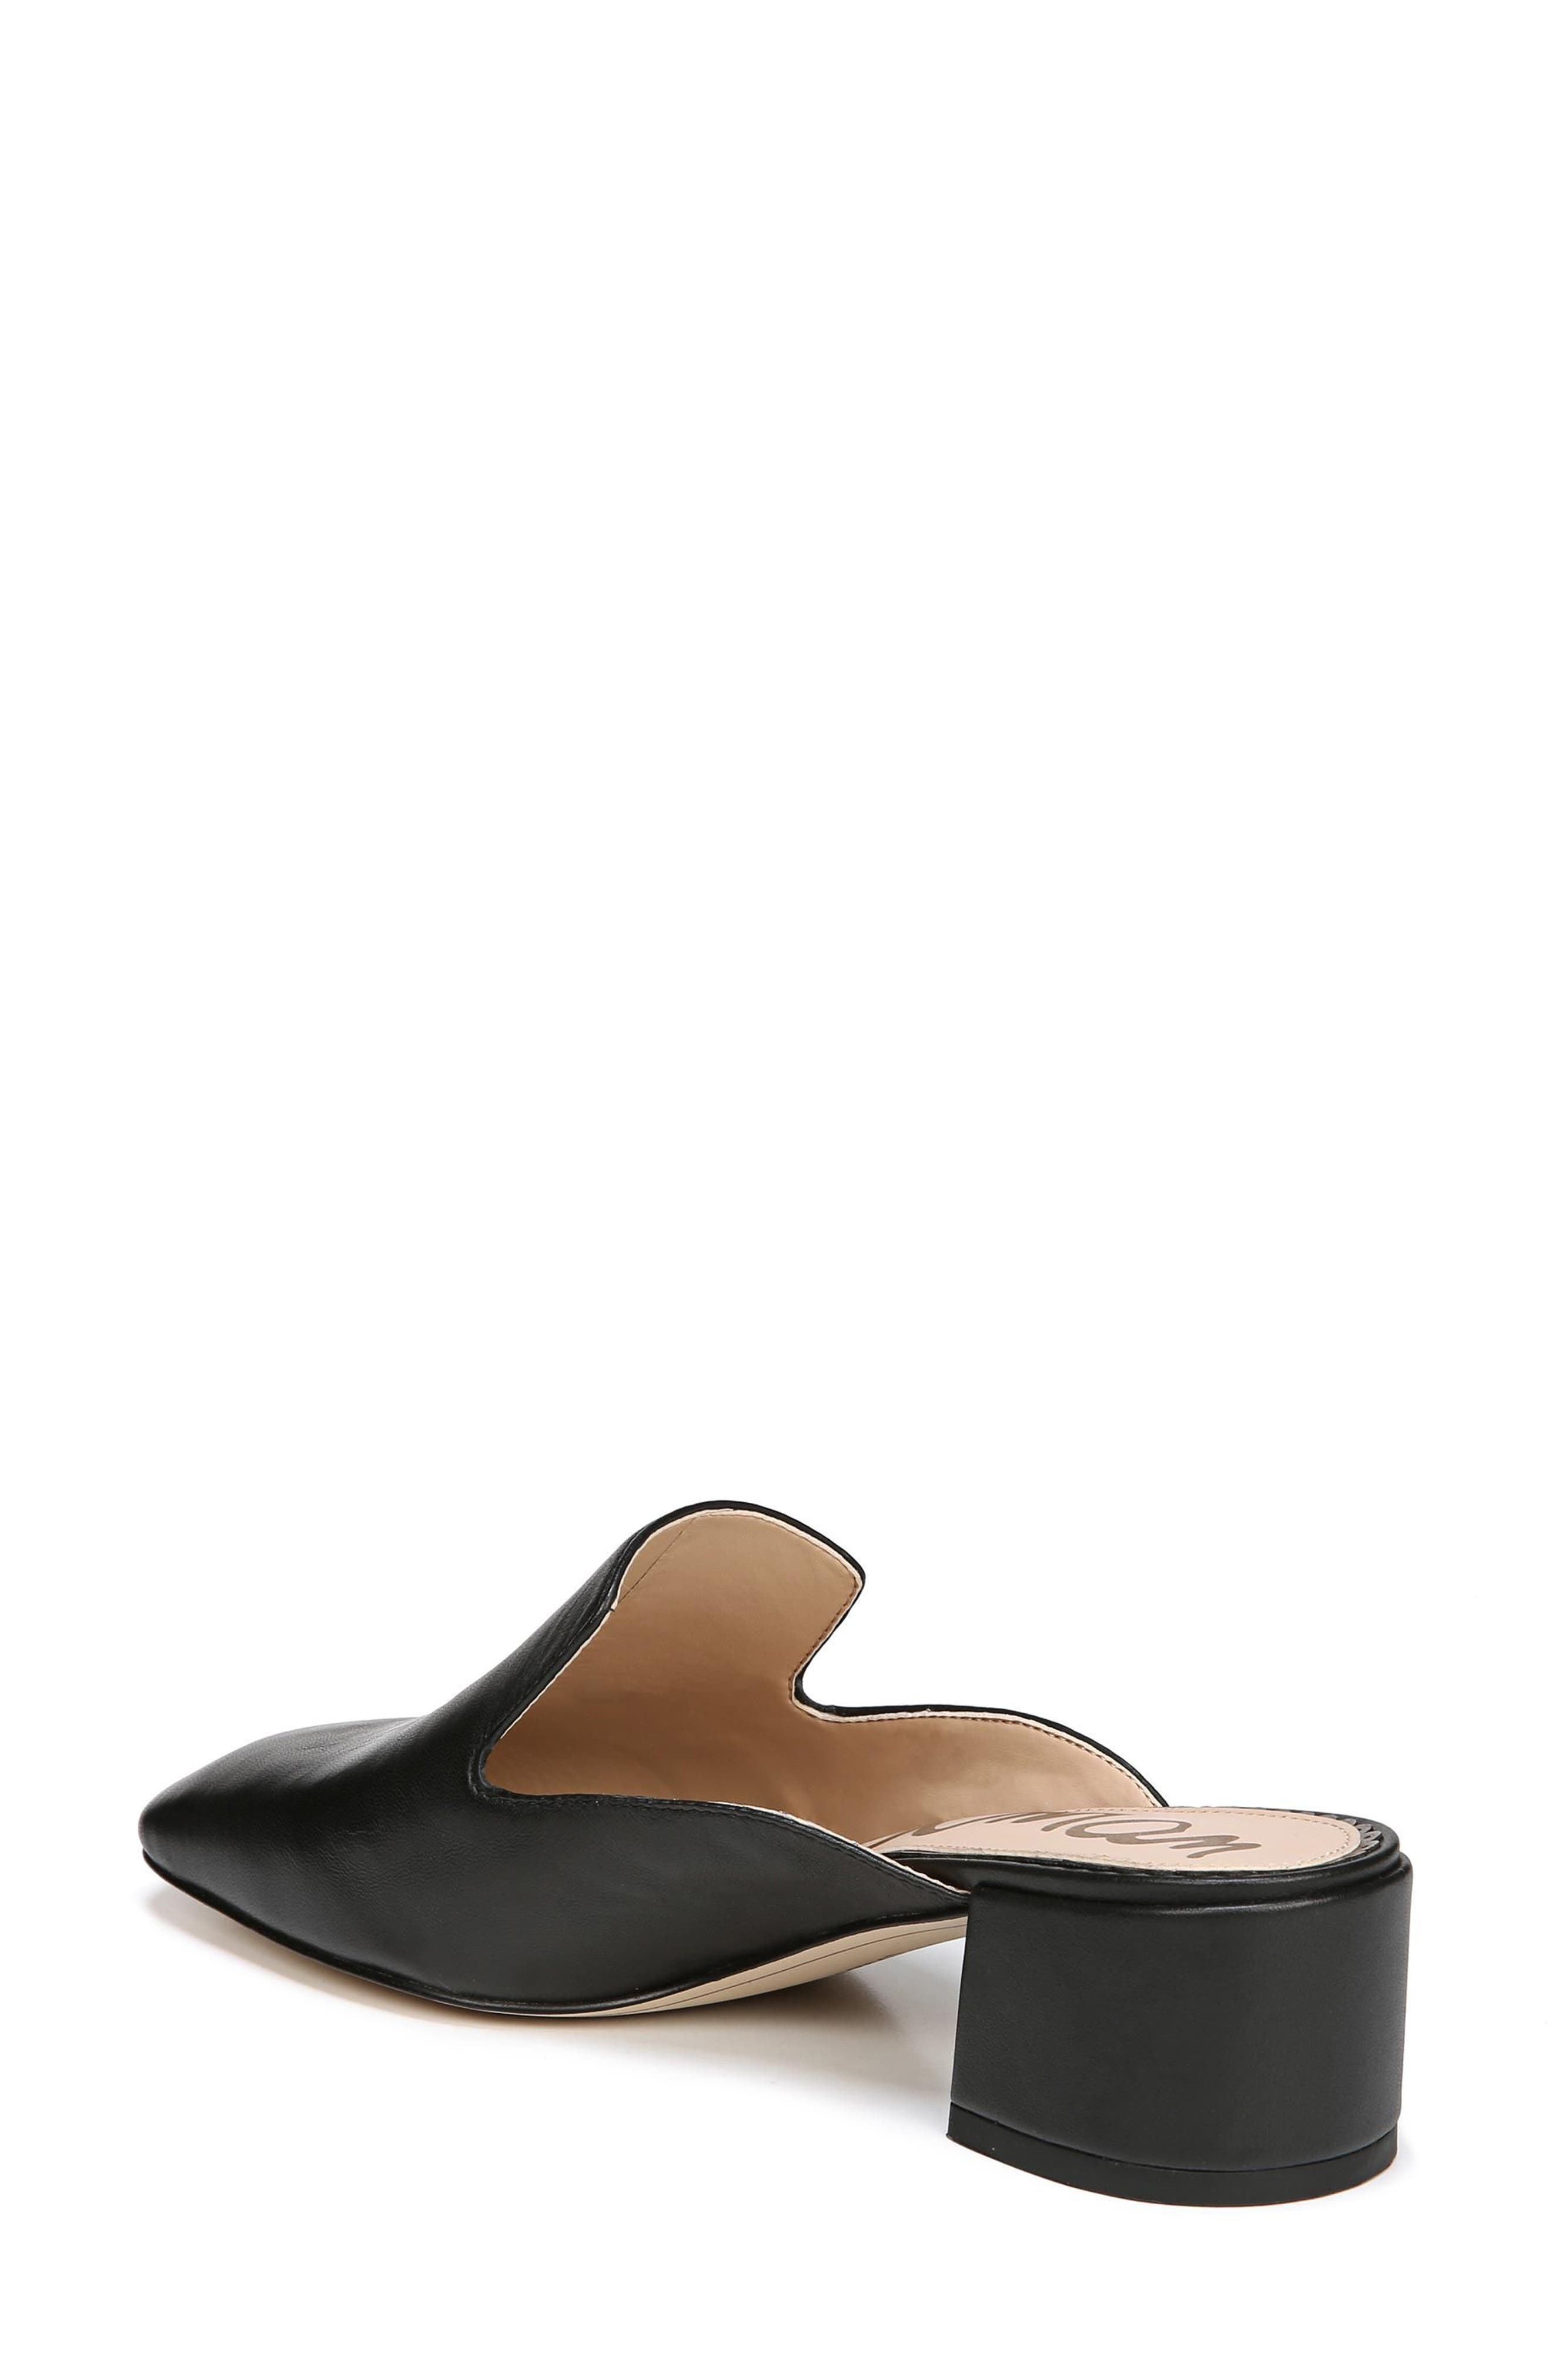 Adair Loafer Mule,                             Alternate thumbnail 2, color,                             BLACK LEATHER